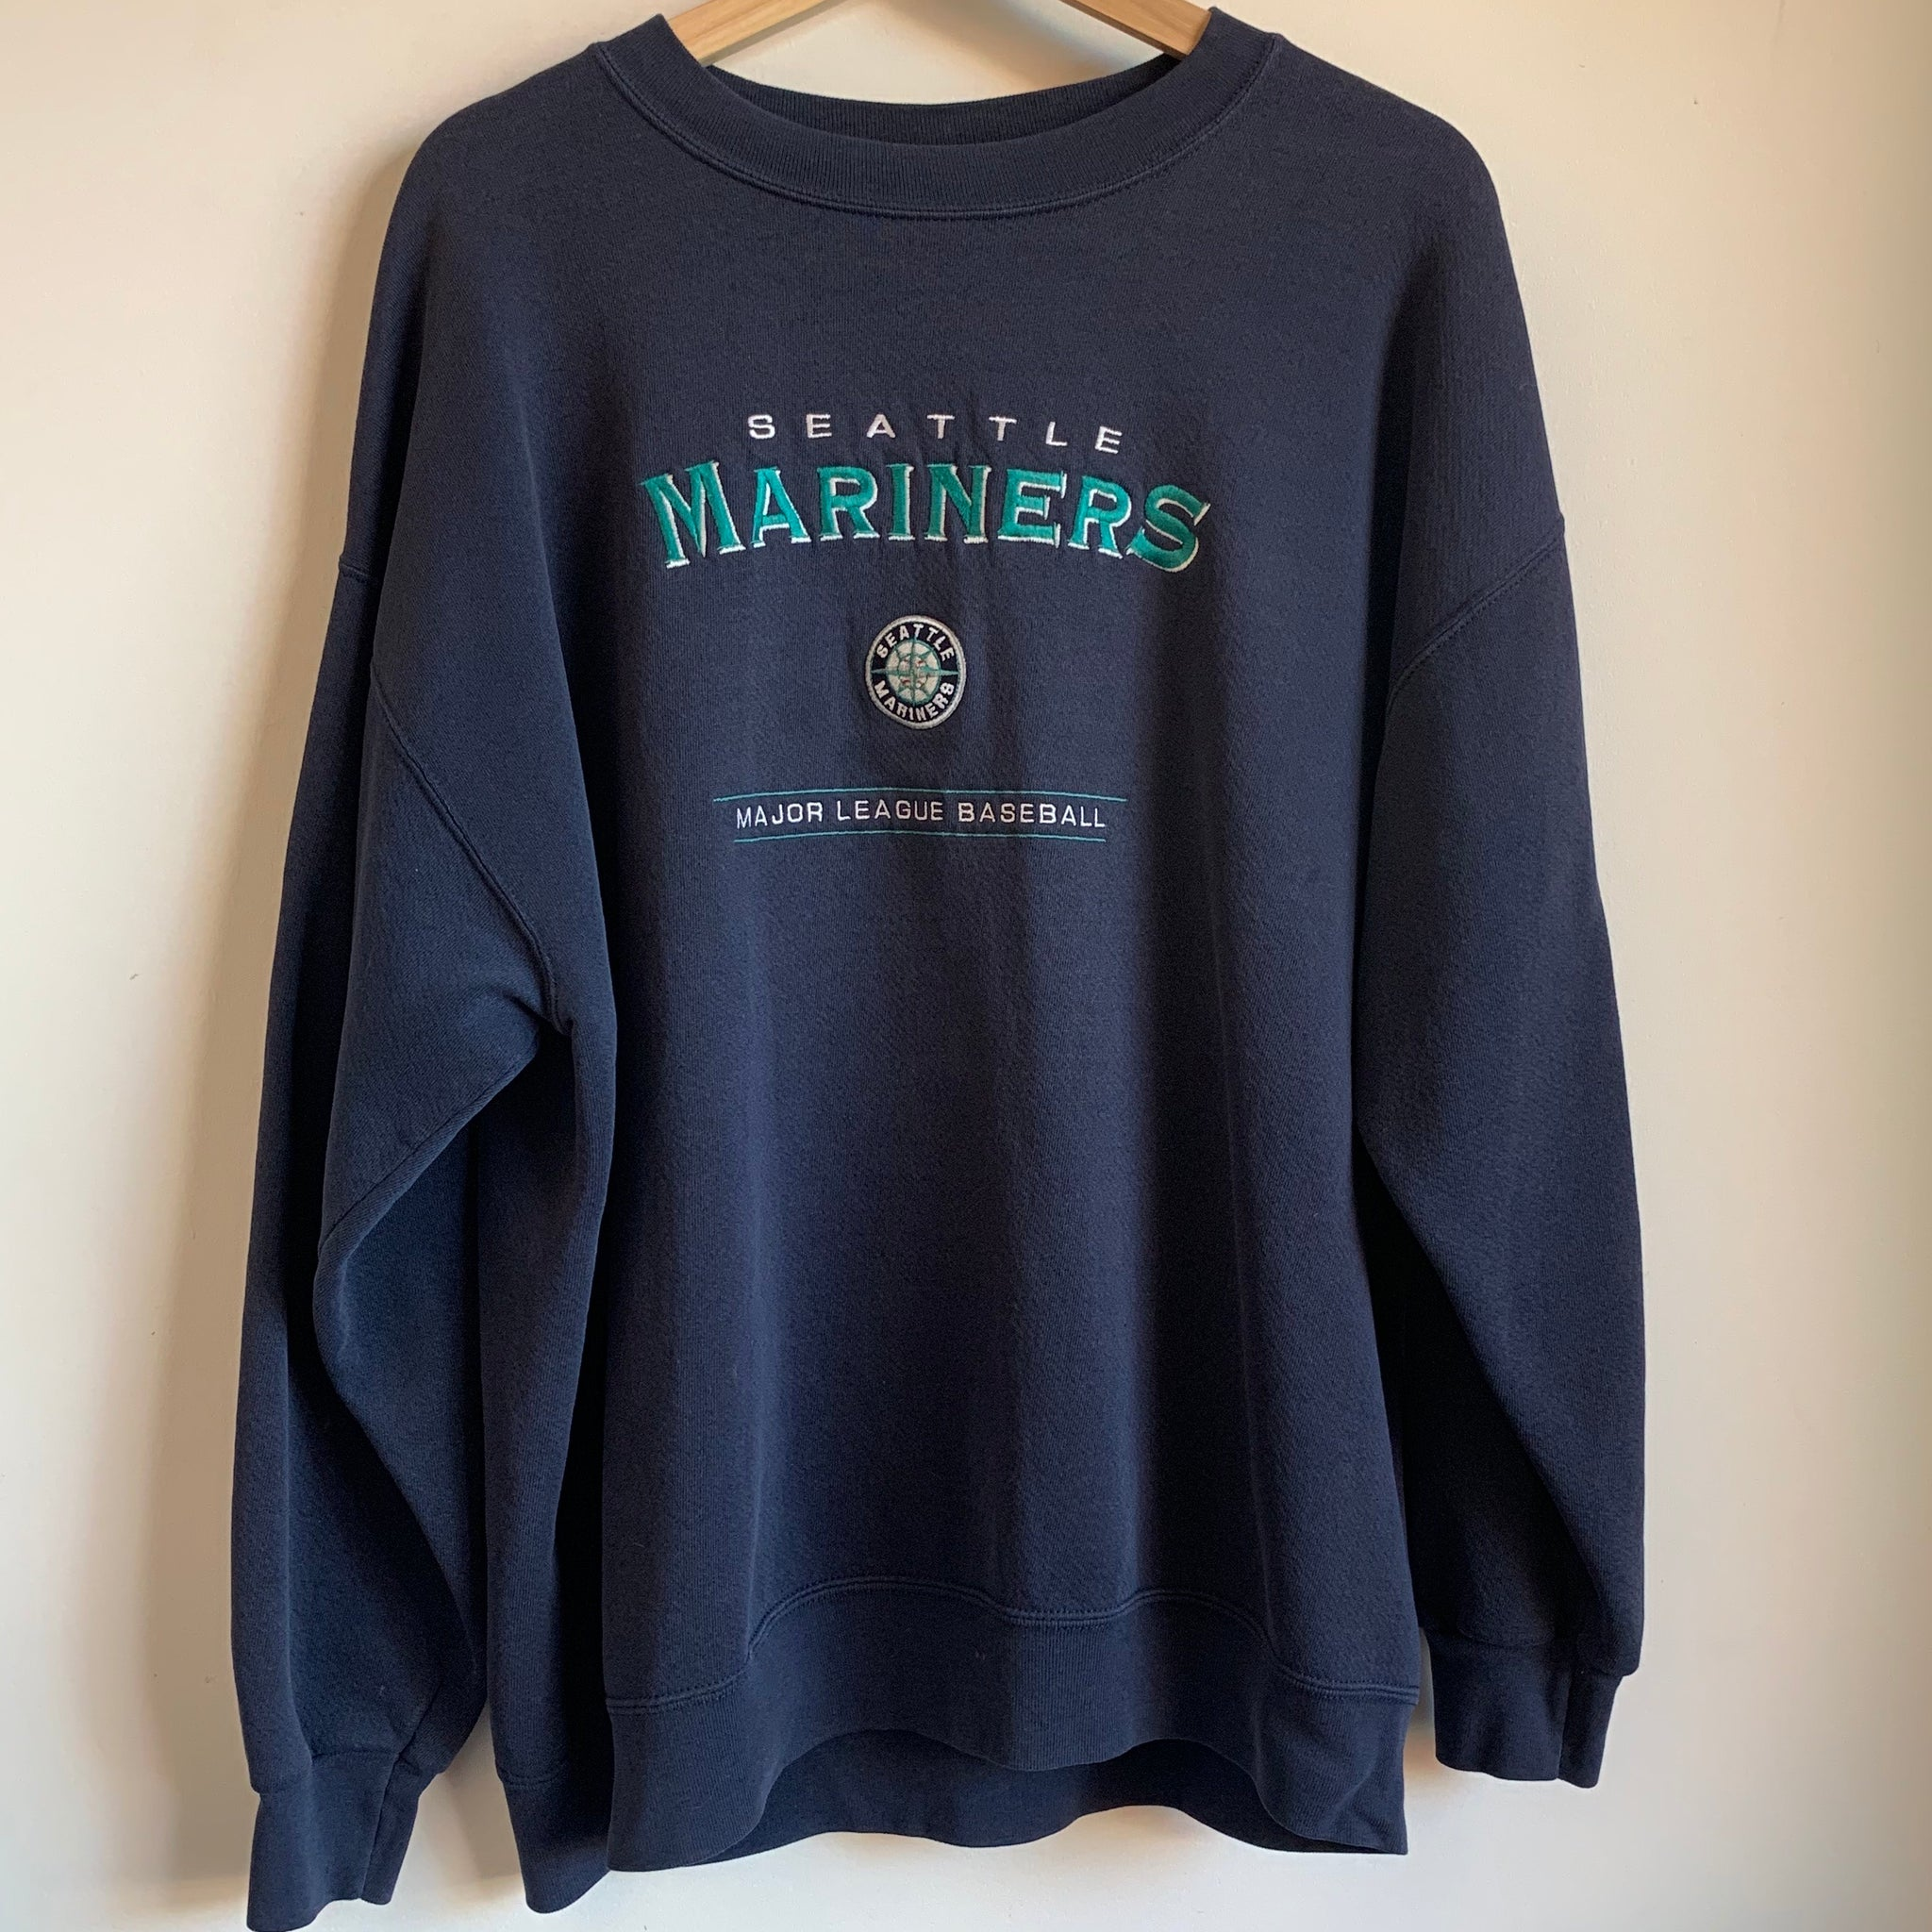 Lee Sport Seattle Mariners Navy Embroidered Crewneck Sweatshirt